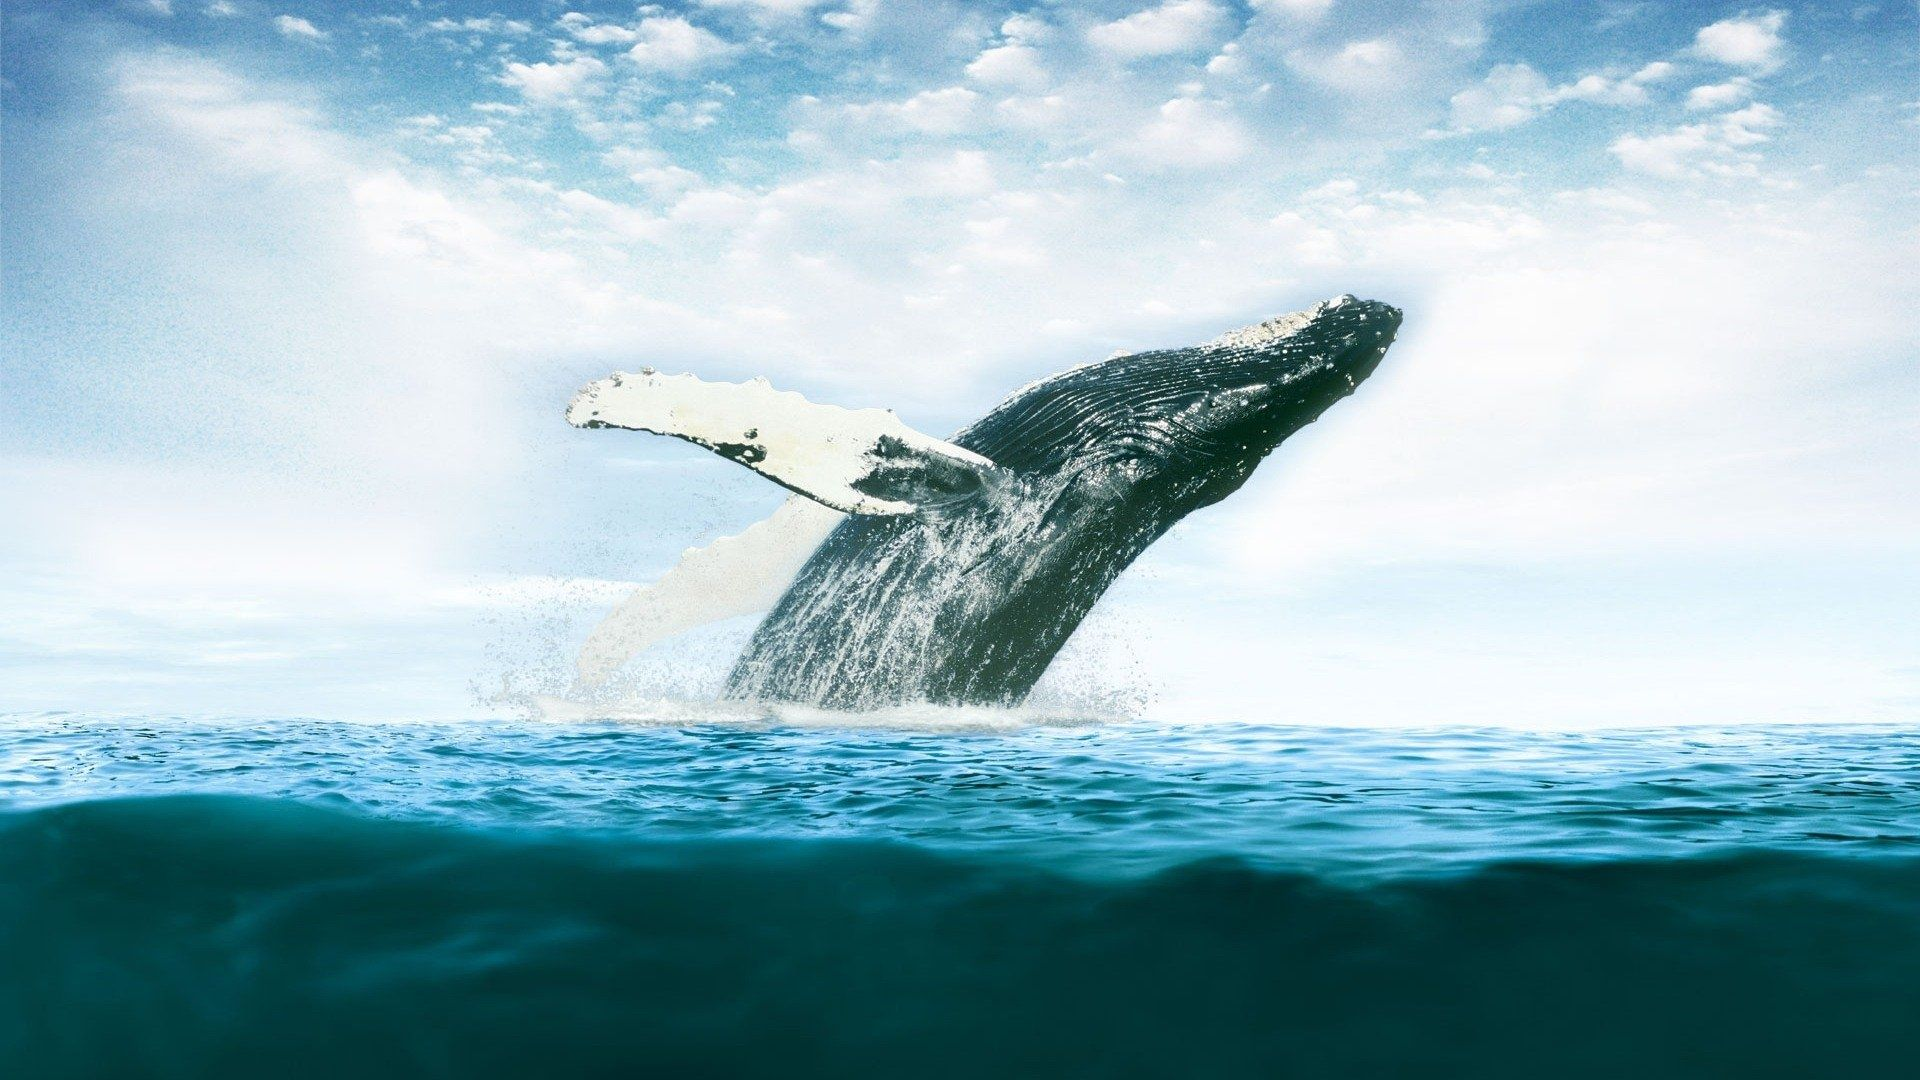 pictures of big whales